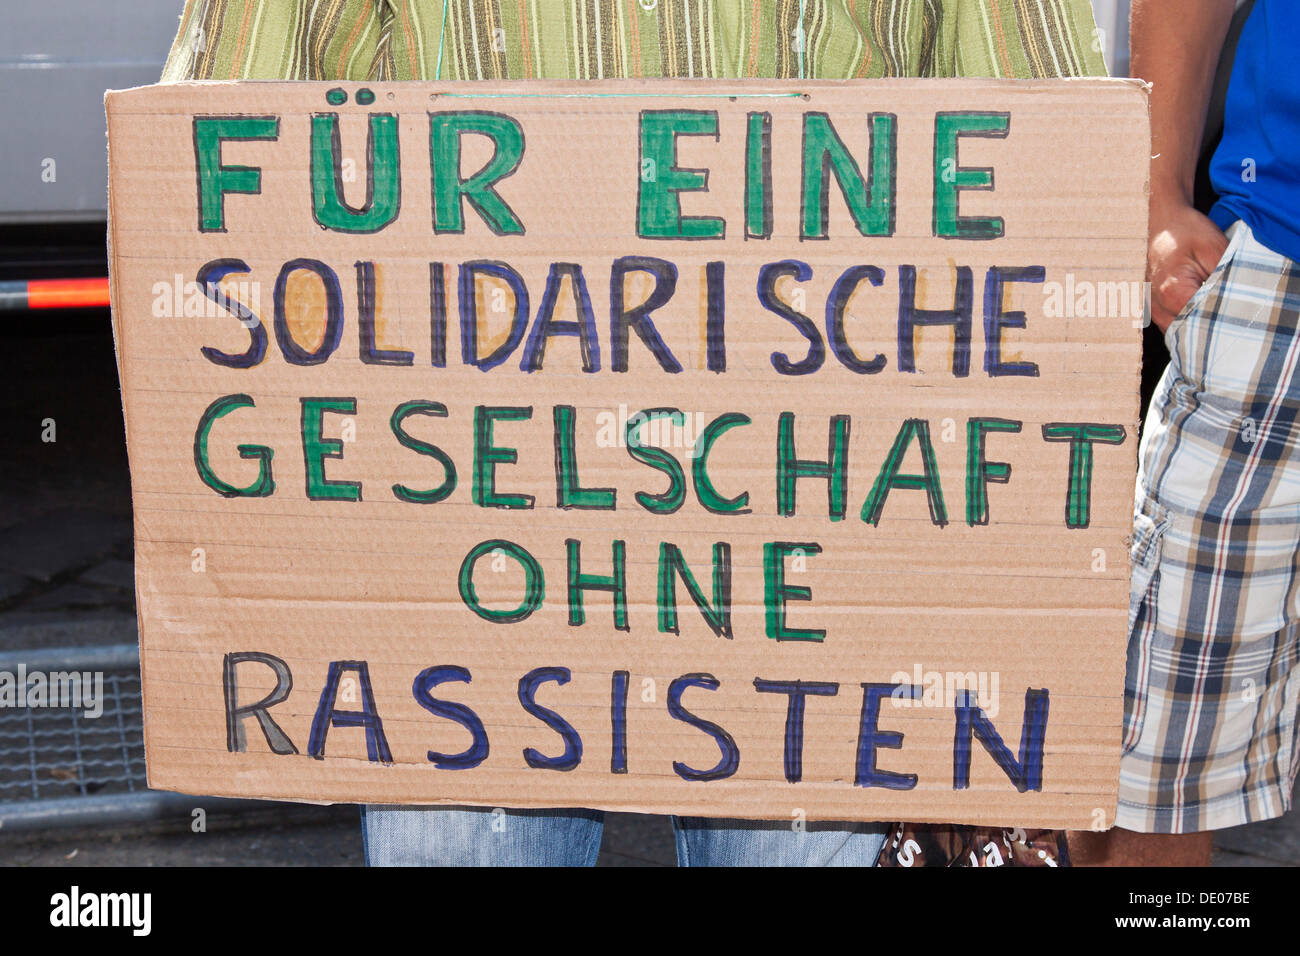 Sign 'Fue eine solidarische Gesellschaft ohne Rassisten', German for 'for a community in solidarity without racists', Left - Stock Image